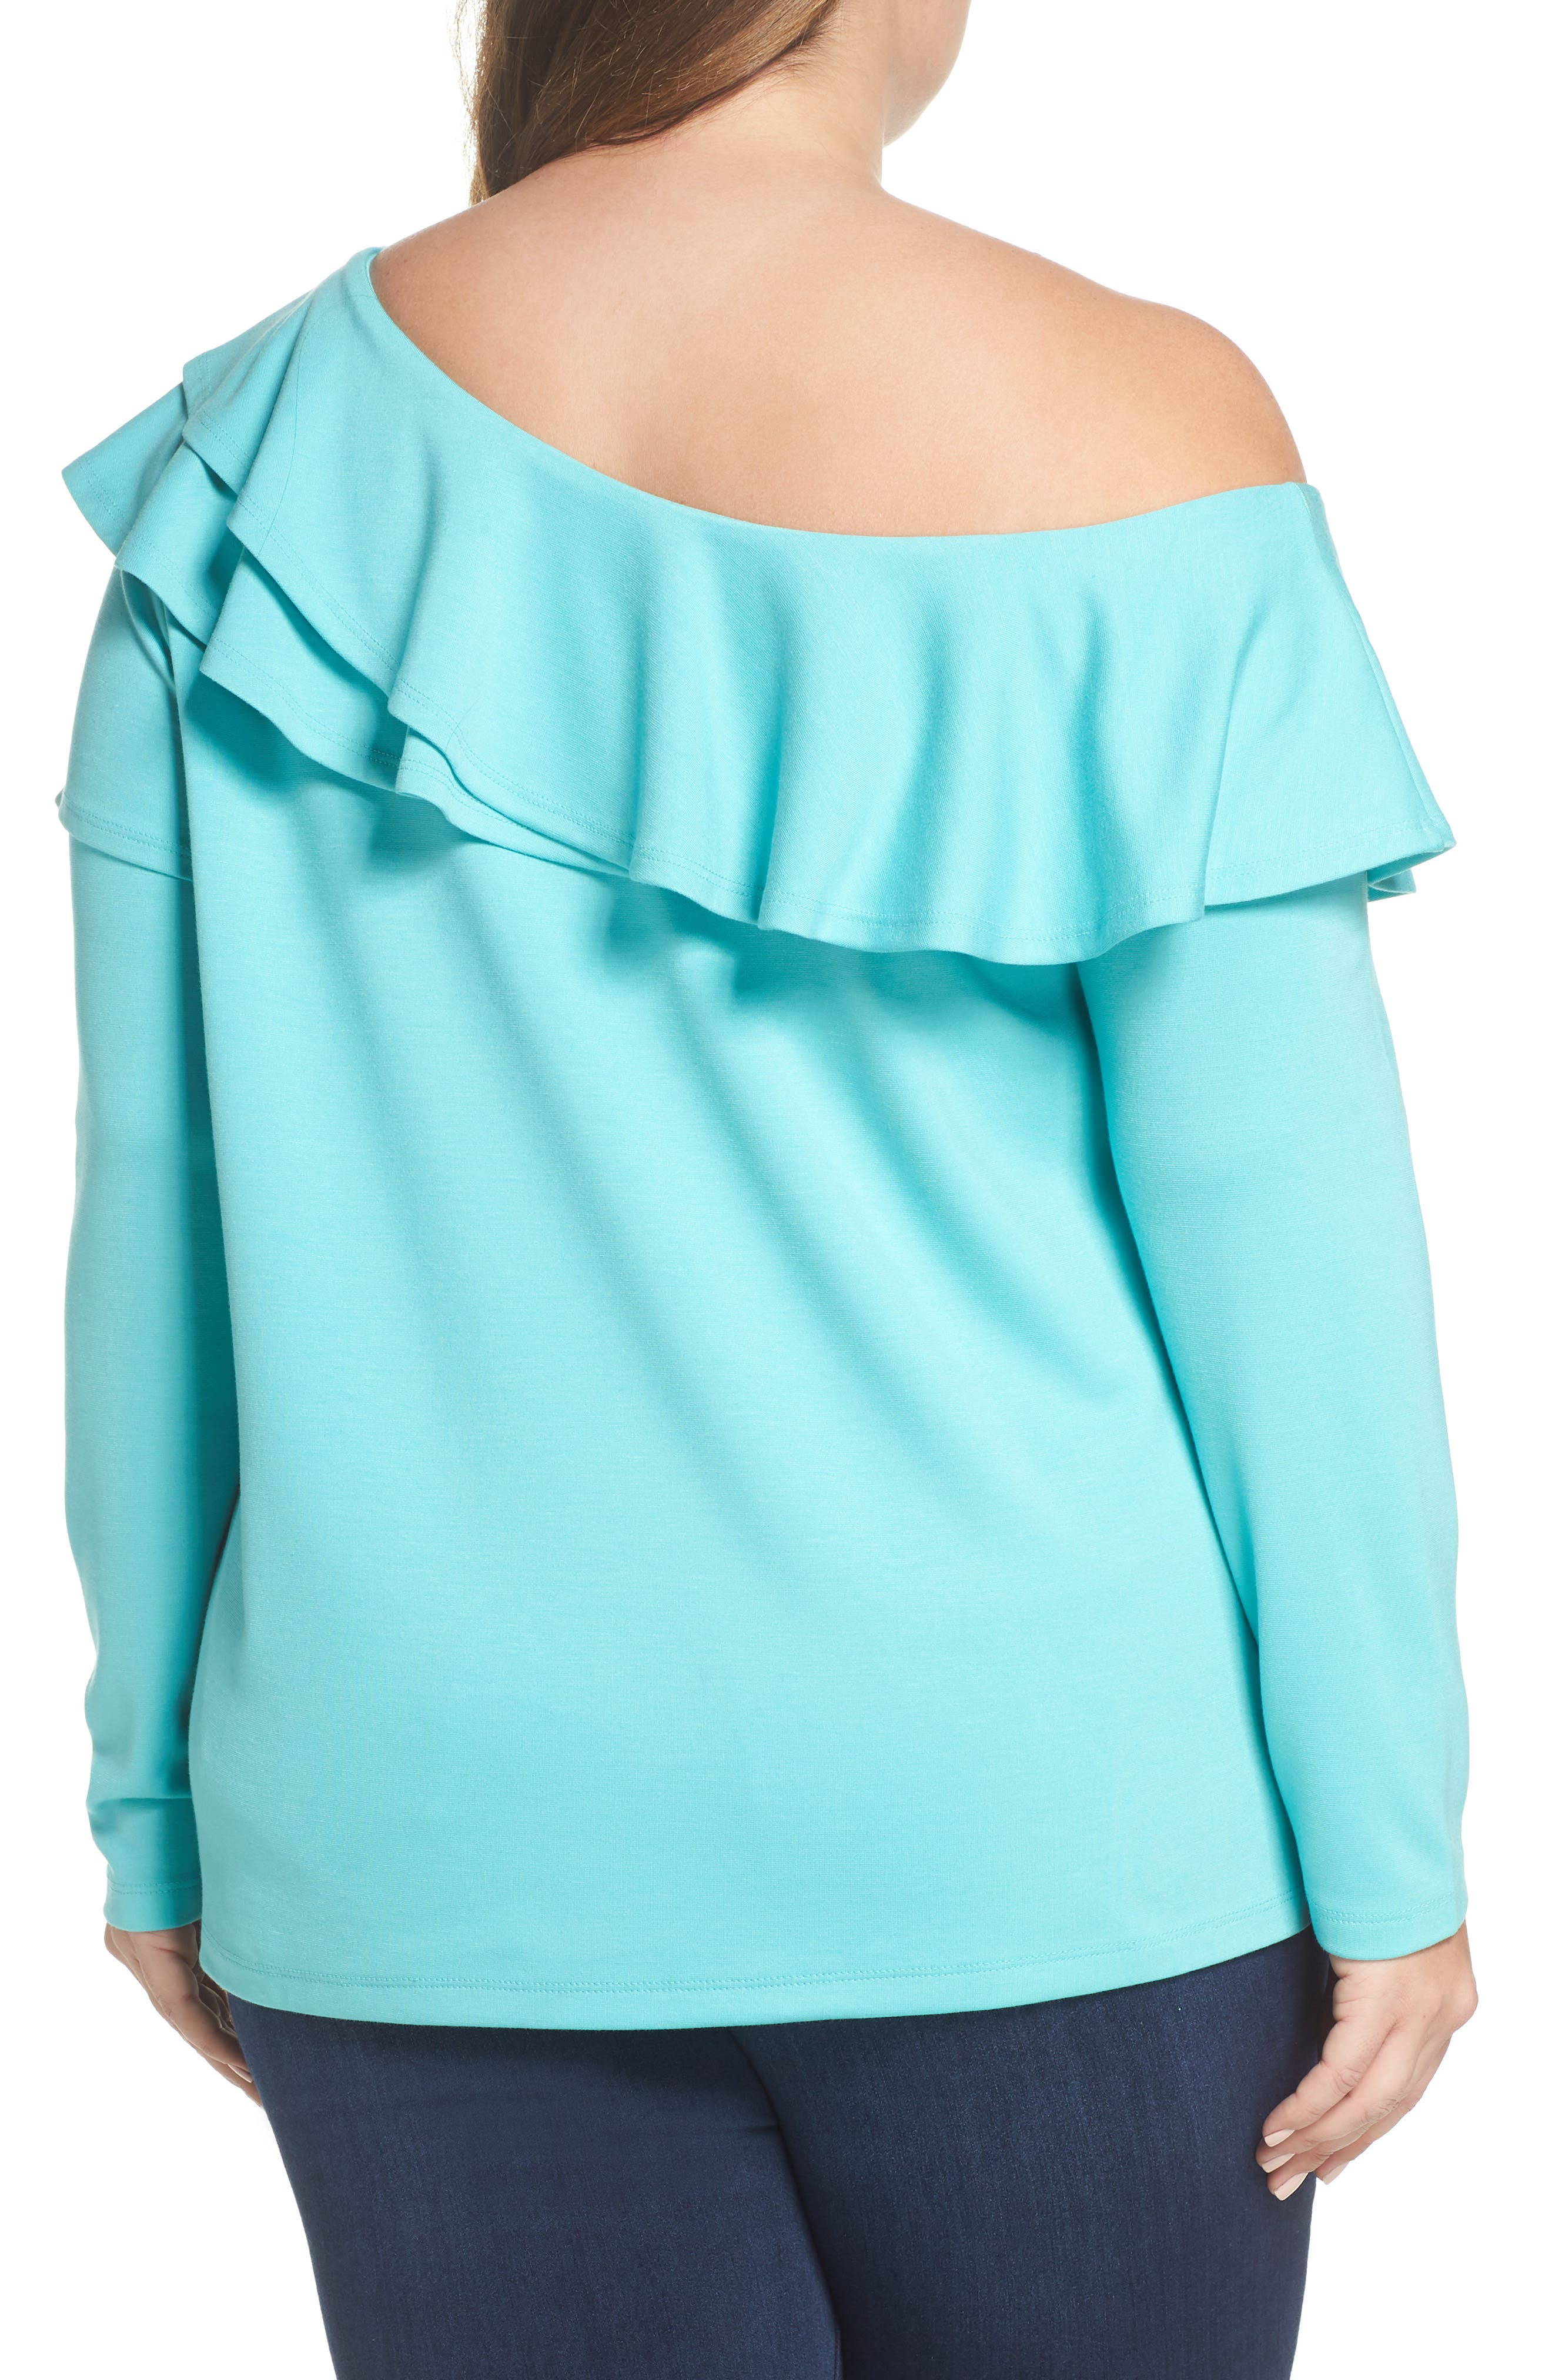 x Living in Yellow Elizabeth One-Shoulder Ruffle Top,                             Alternate thumbnail 7, color,